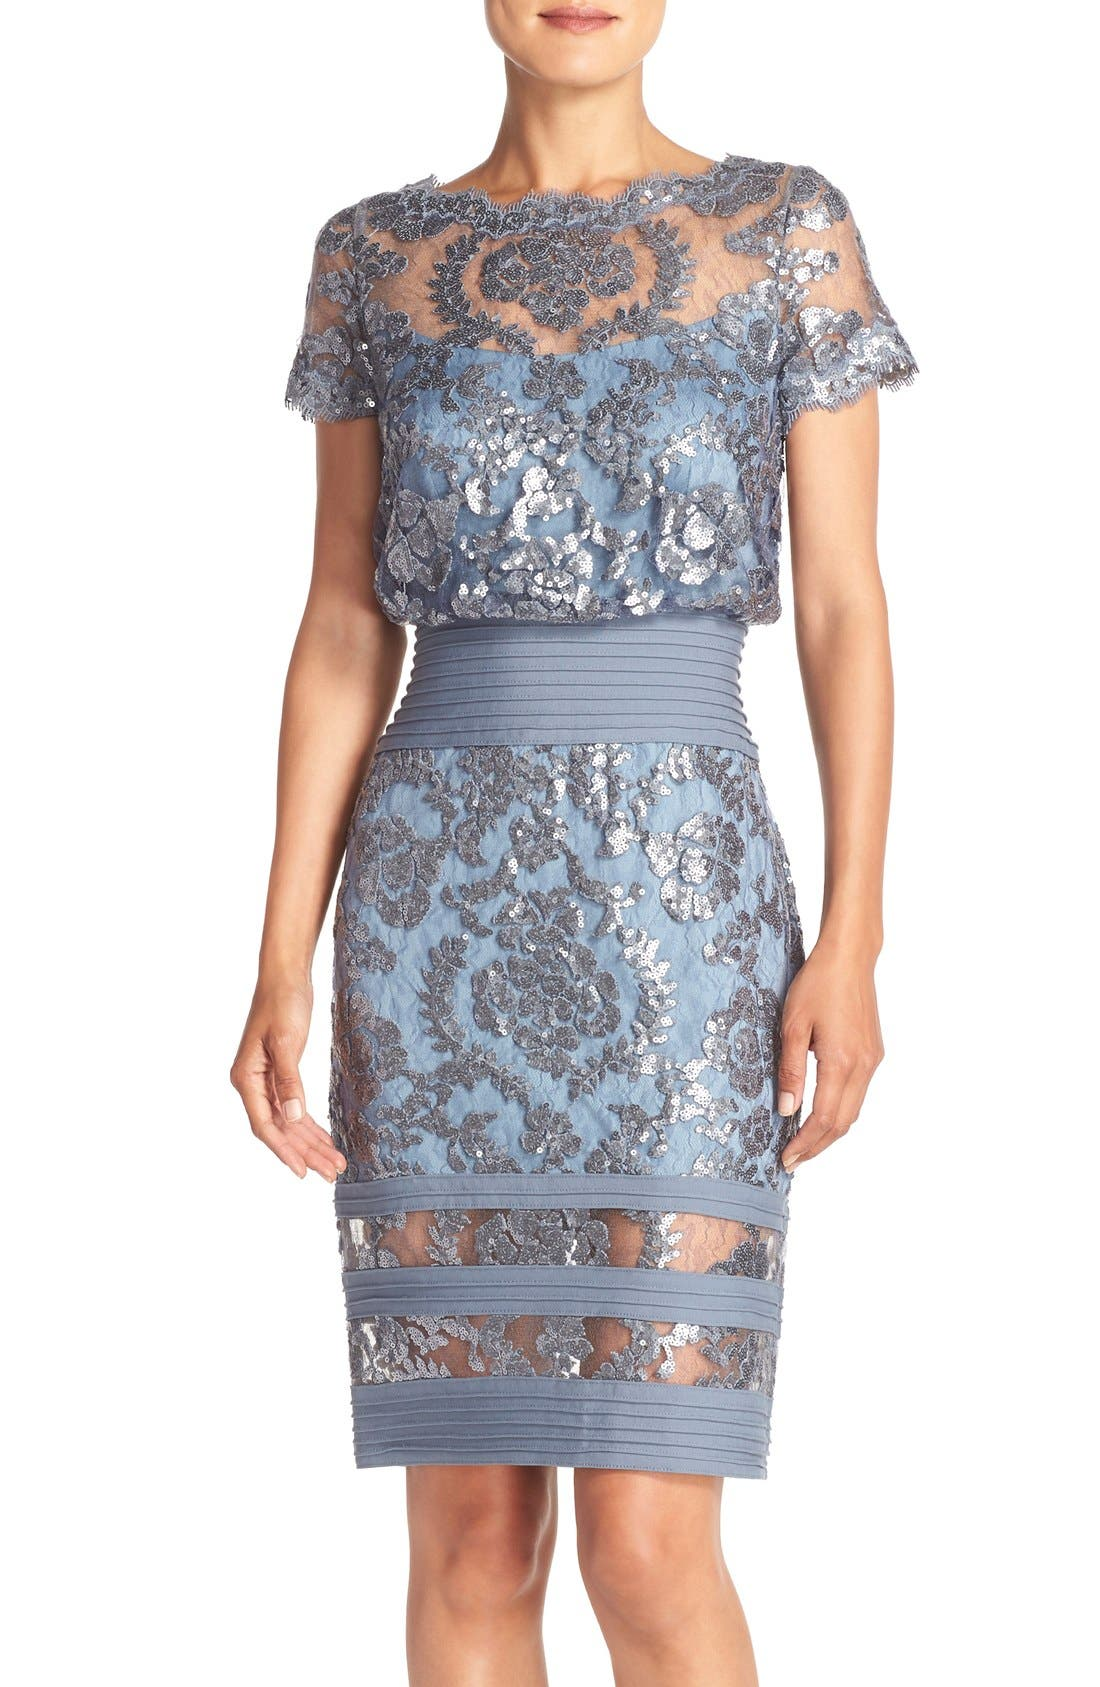 Alternate Image 1 Selected - Tadashi Shoji Sequin Embroidered Blouson Dress (Regular & Petite)